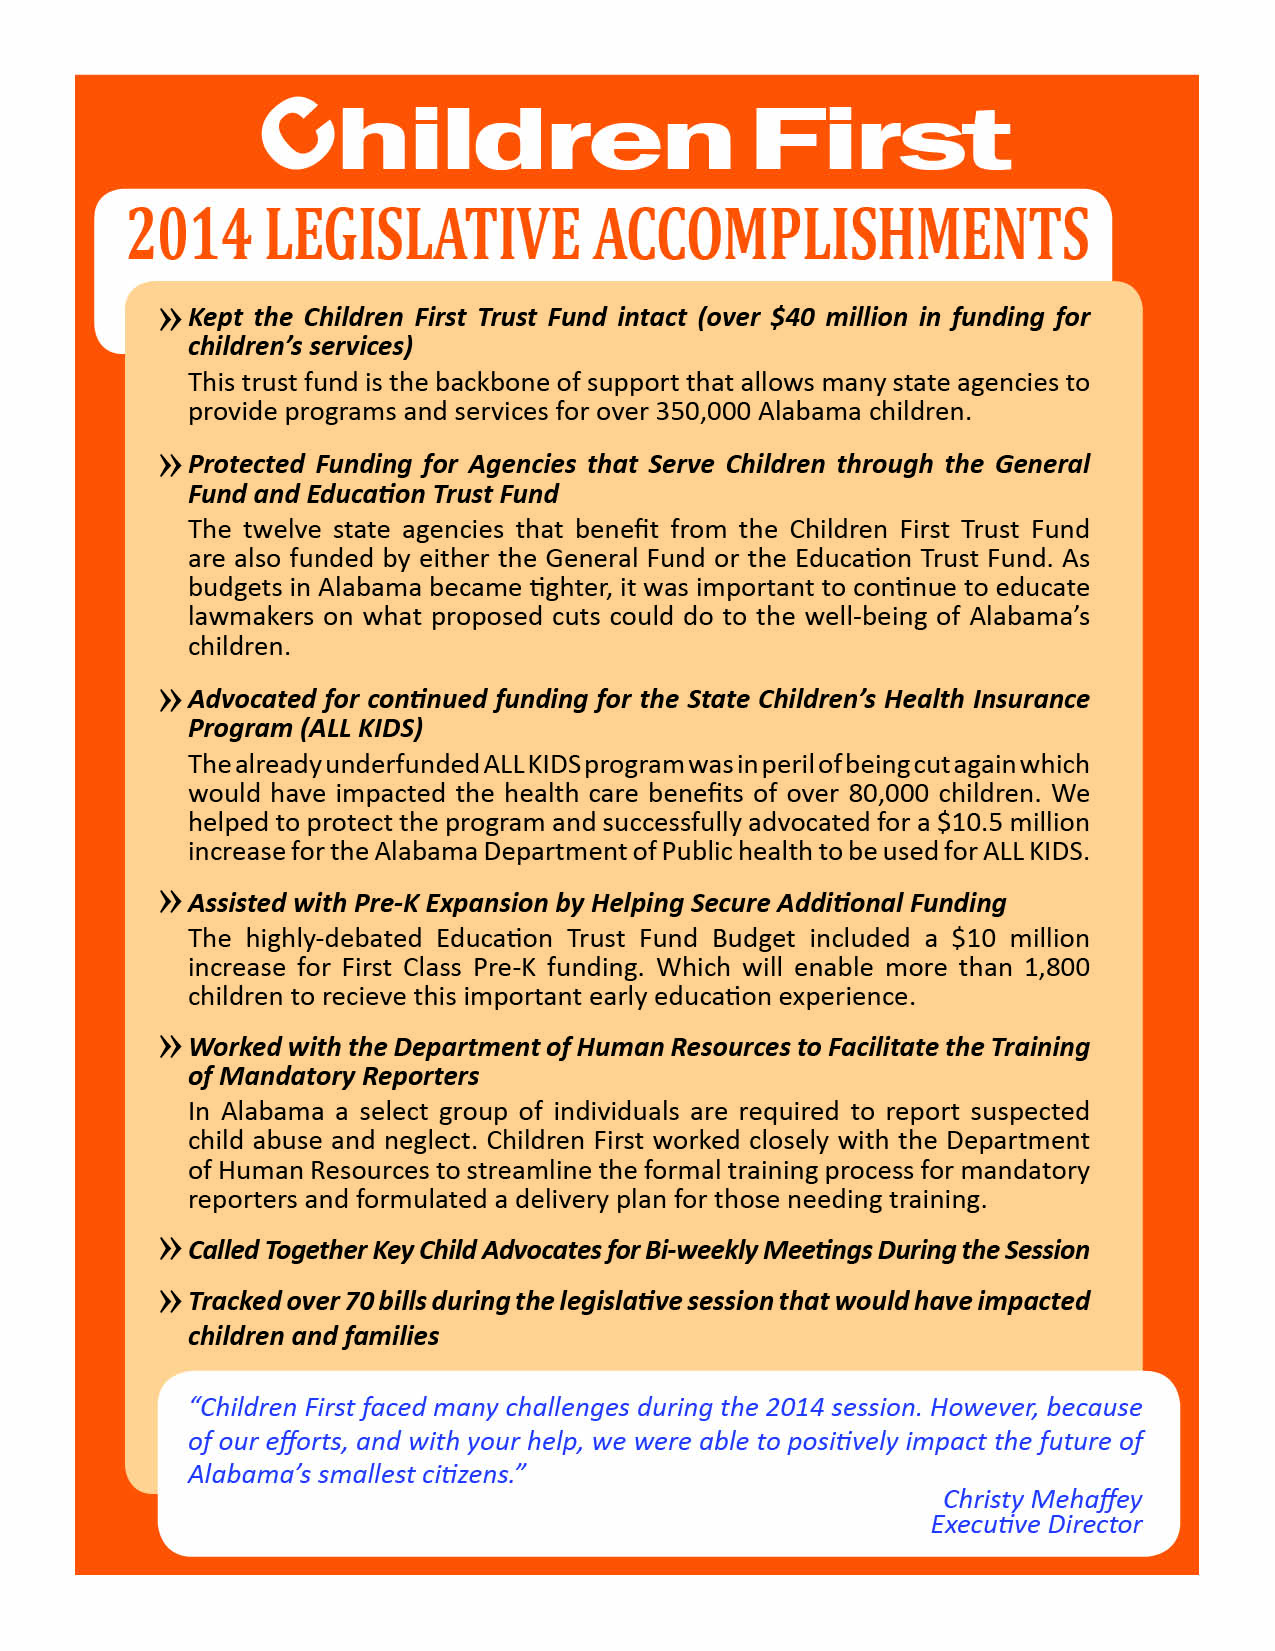 2014 Legislative Accomplishments.jpg